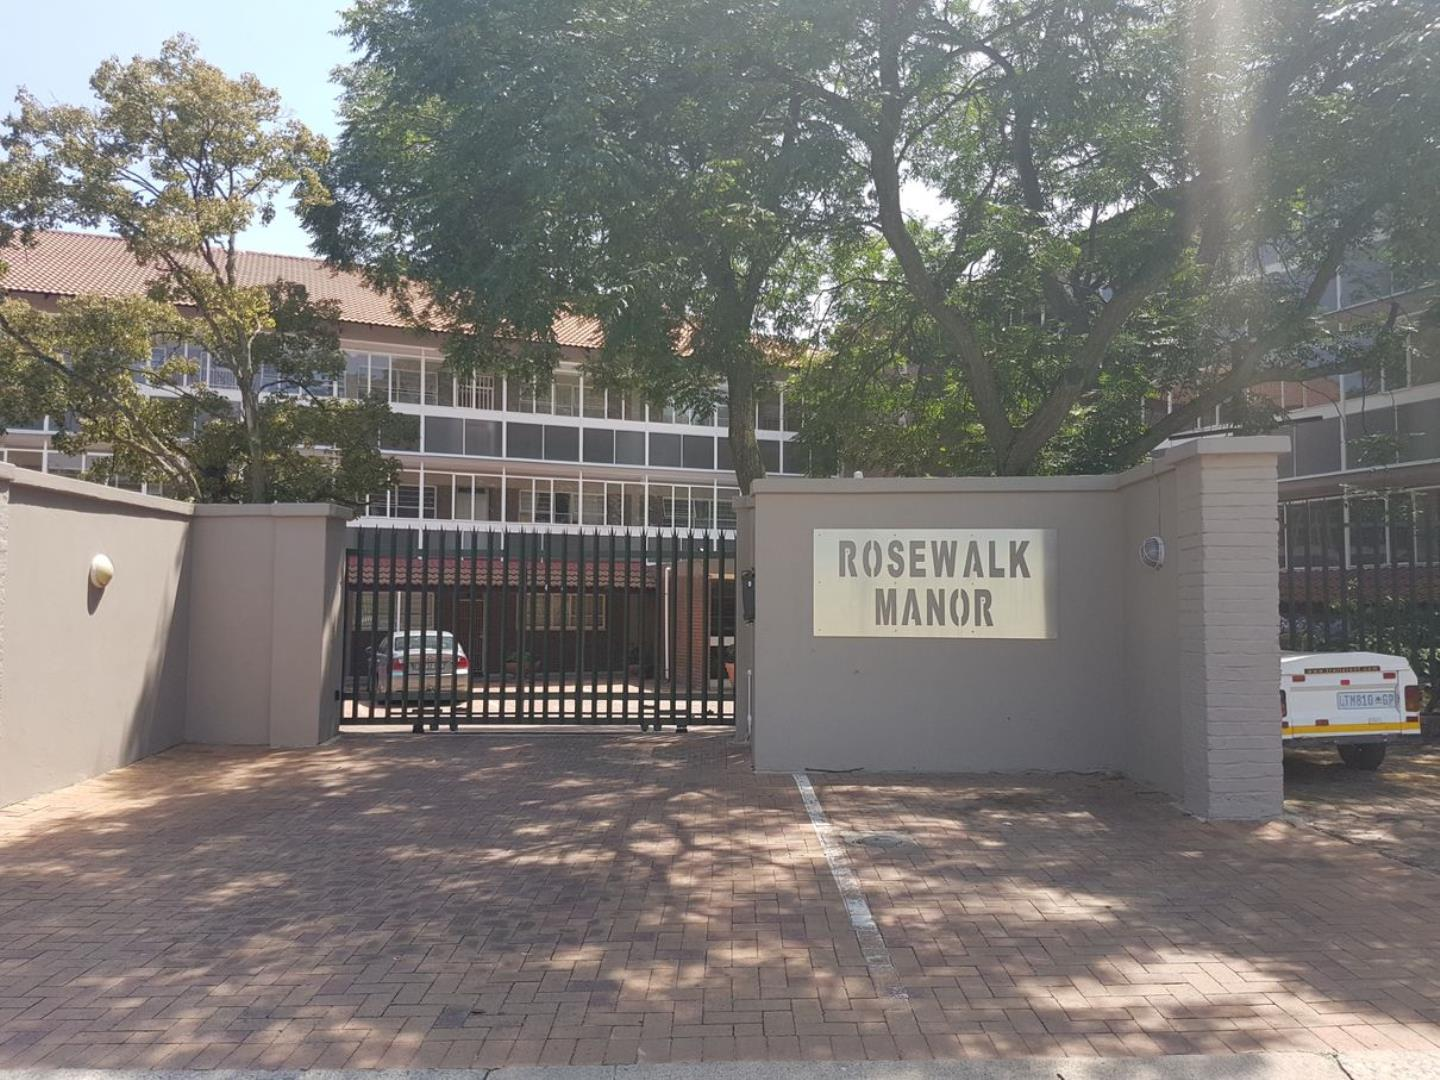 2 Bedroom Apartment for Sale in Parkmore, Sandton - Gauteng